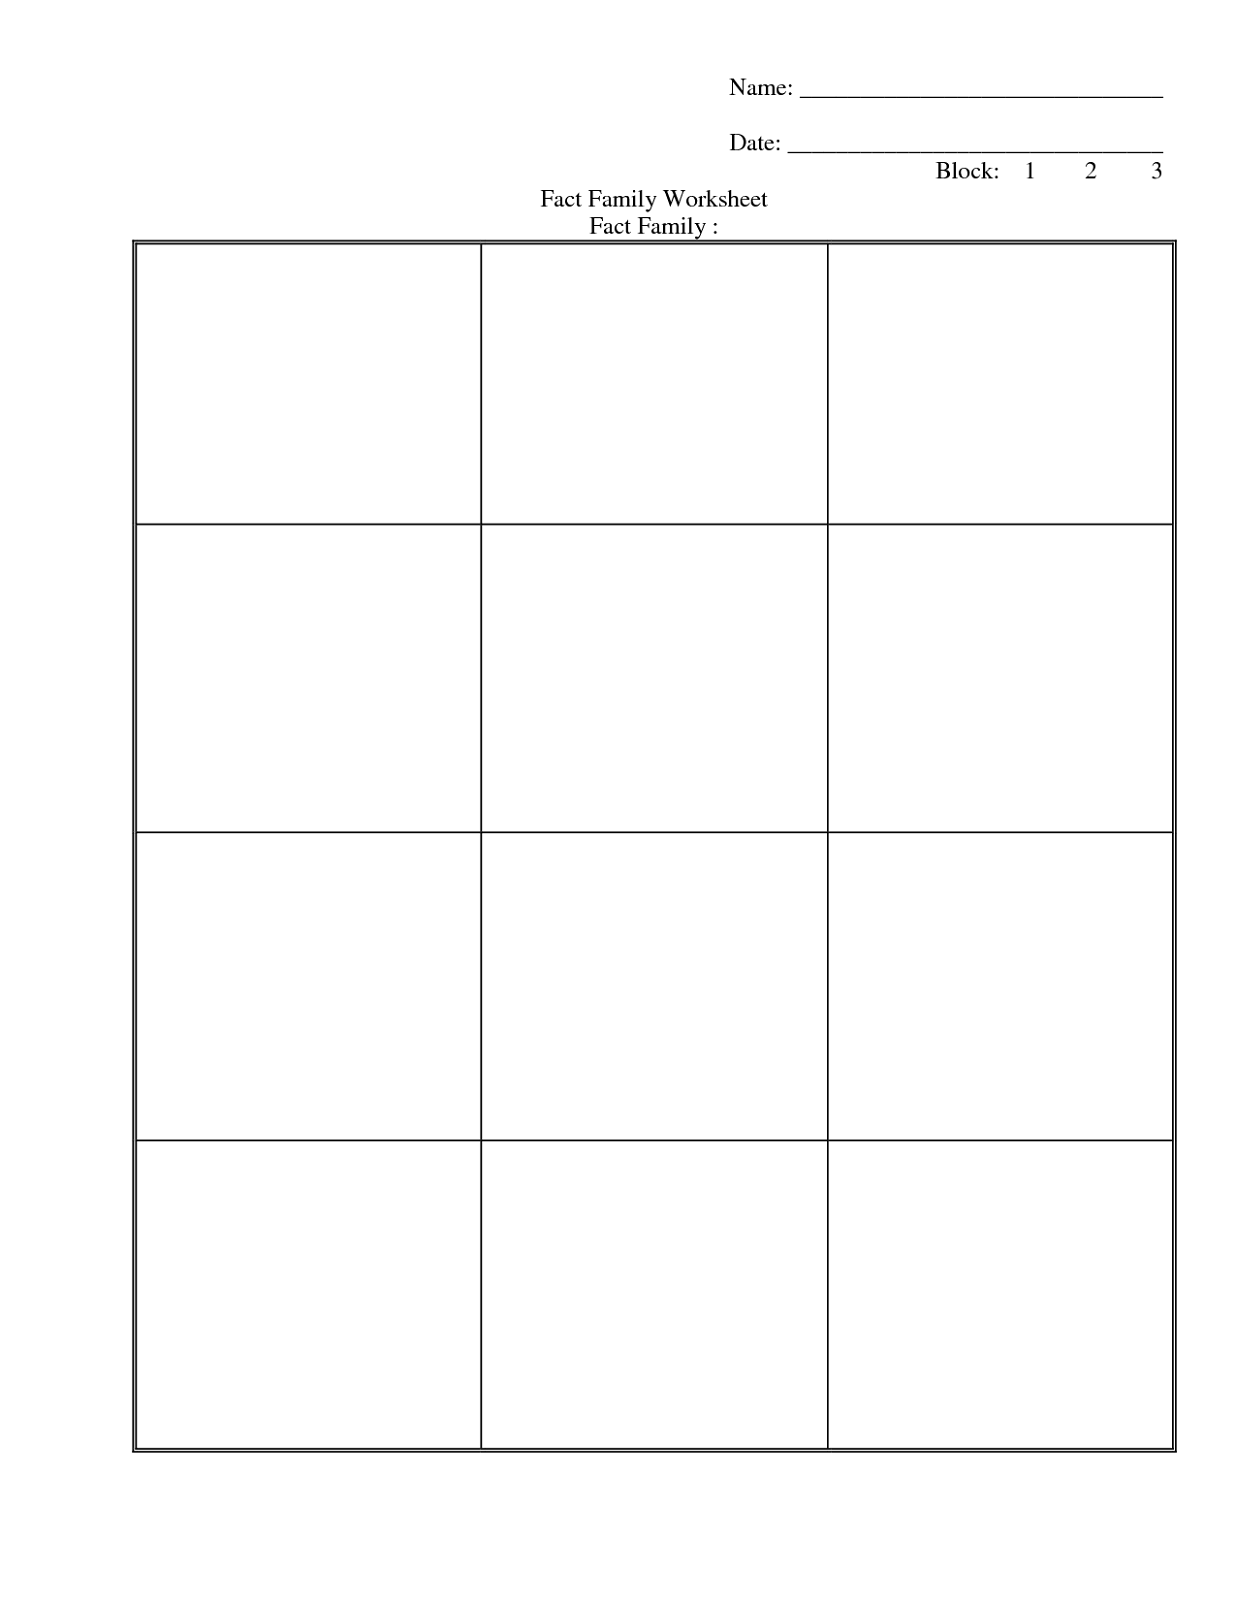 family-facts-worksheets-blank